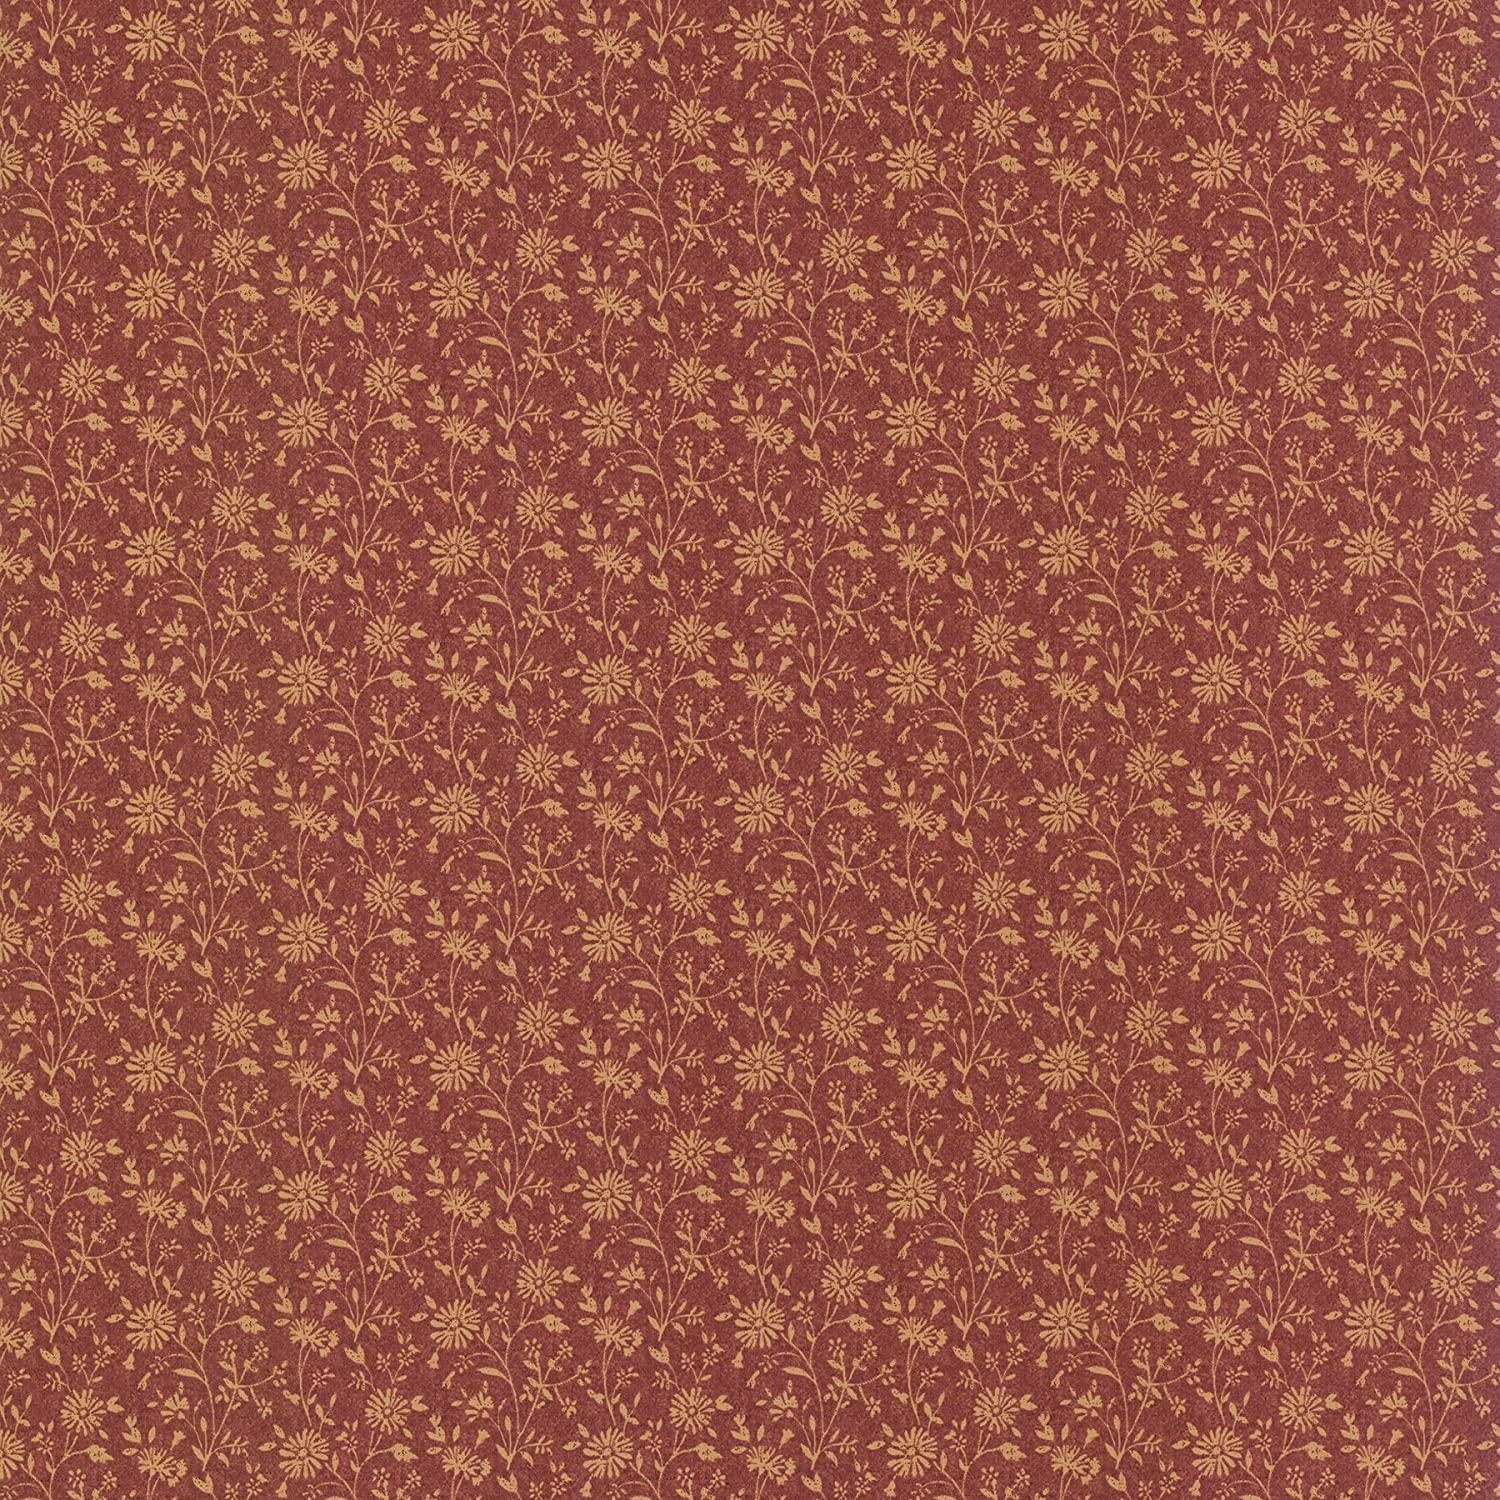 Brewster 413 58506 Janice Country Floral Wallpaper Brick